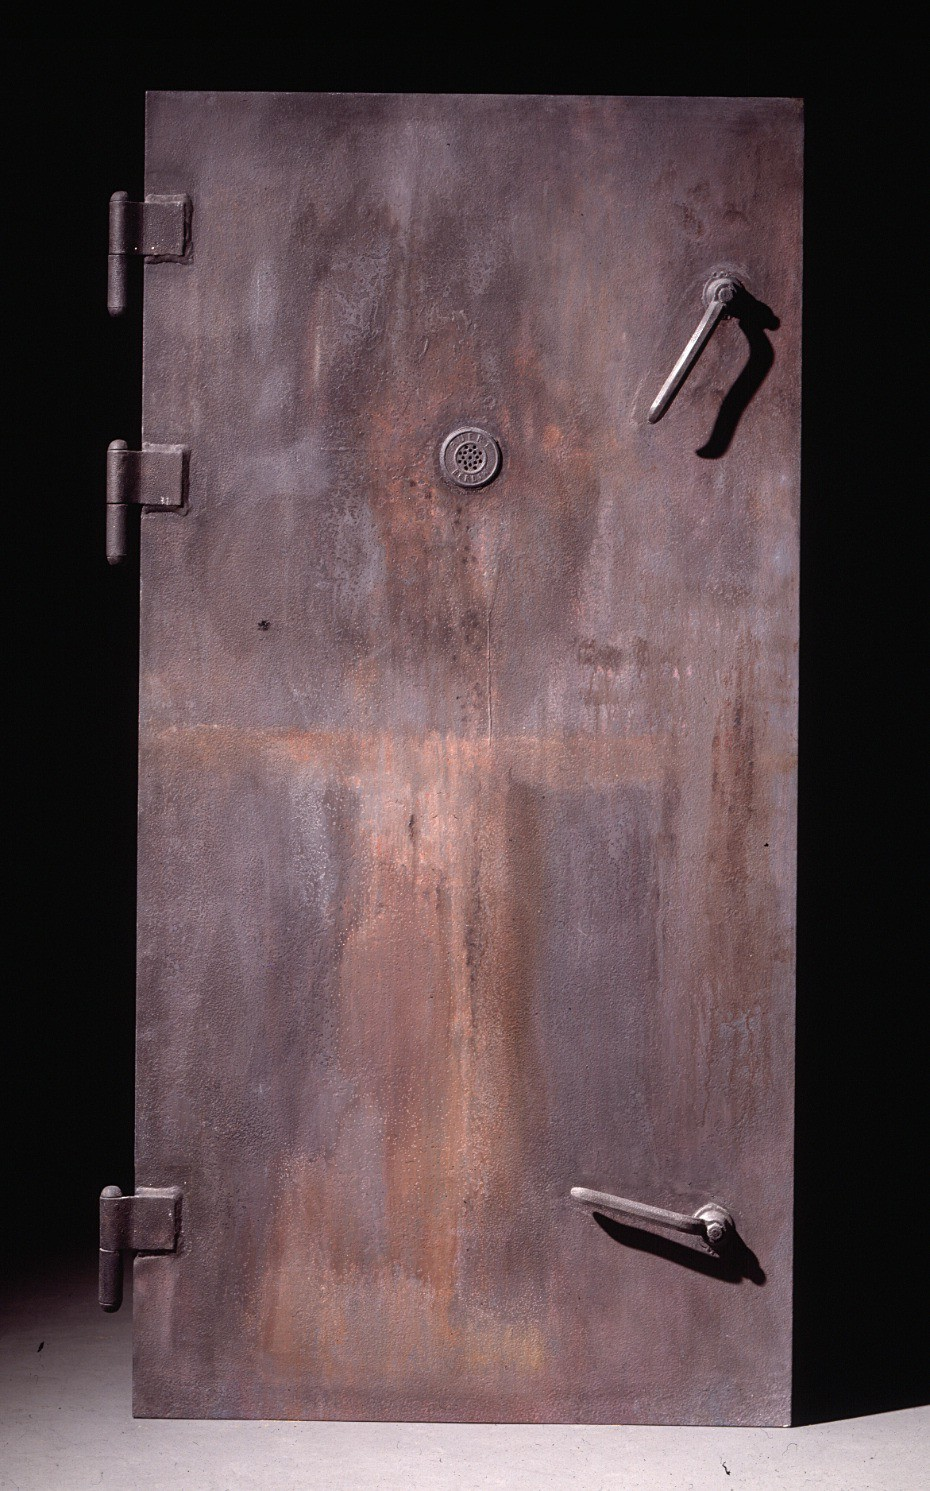 "<p>This casting of a gas chamber door in the <a href=""/narrative/3168"">Majdanek</a> camp, near Lublin, Poland, was commissioned by the United States Holocaust Memorial Museum. Each gas chamber in Majdanek was fitted with an airtight metal door and was bolted shut before <a href=""/narrative/4537"">gas</a> entered the chamber inside. SS guards could observe the killing process through peepholes in the upper center of the door.</p>"